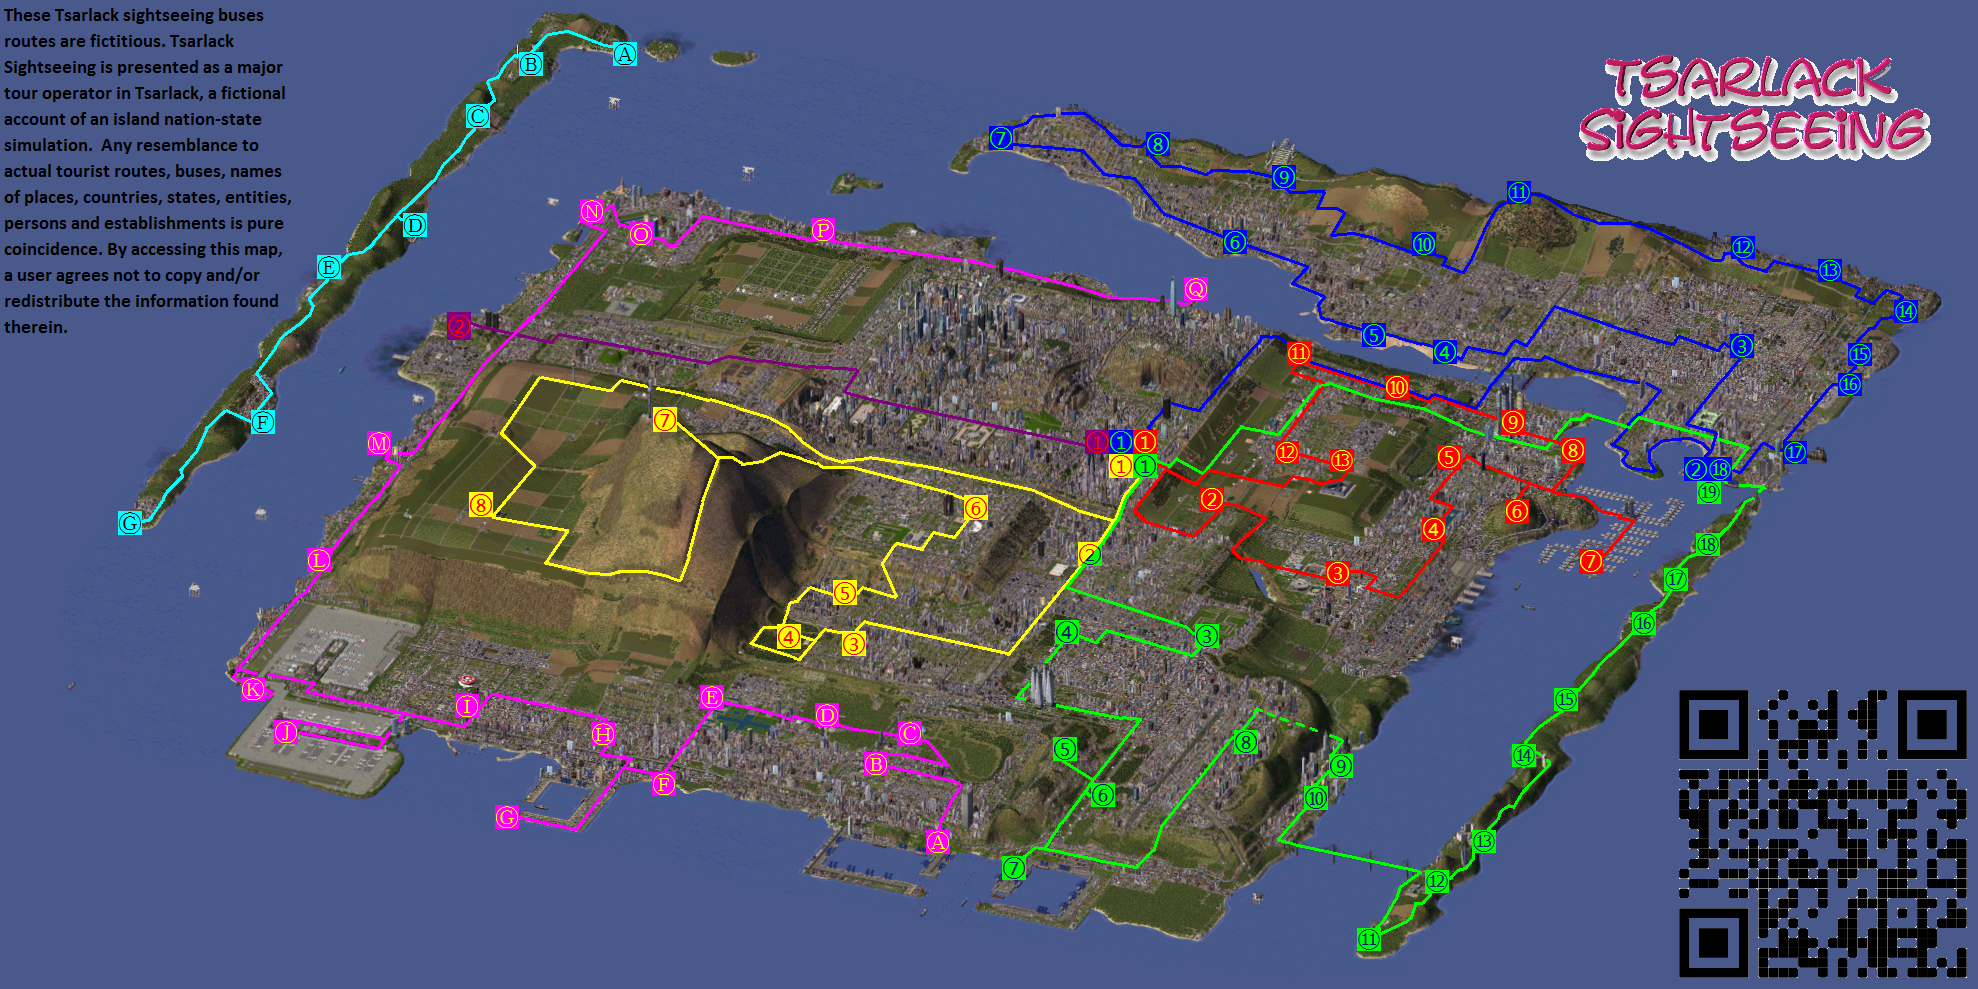 To use this map, click on it and use Ctrl+ to Zoom In, Ctrl- to Zoom Out and the Arrow Keys to navigate.